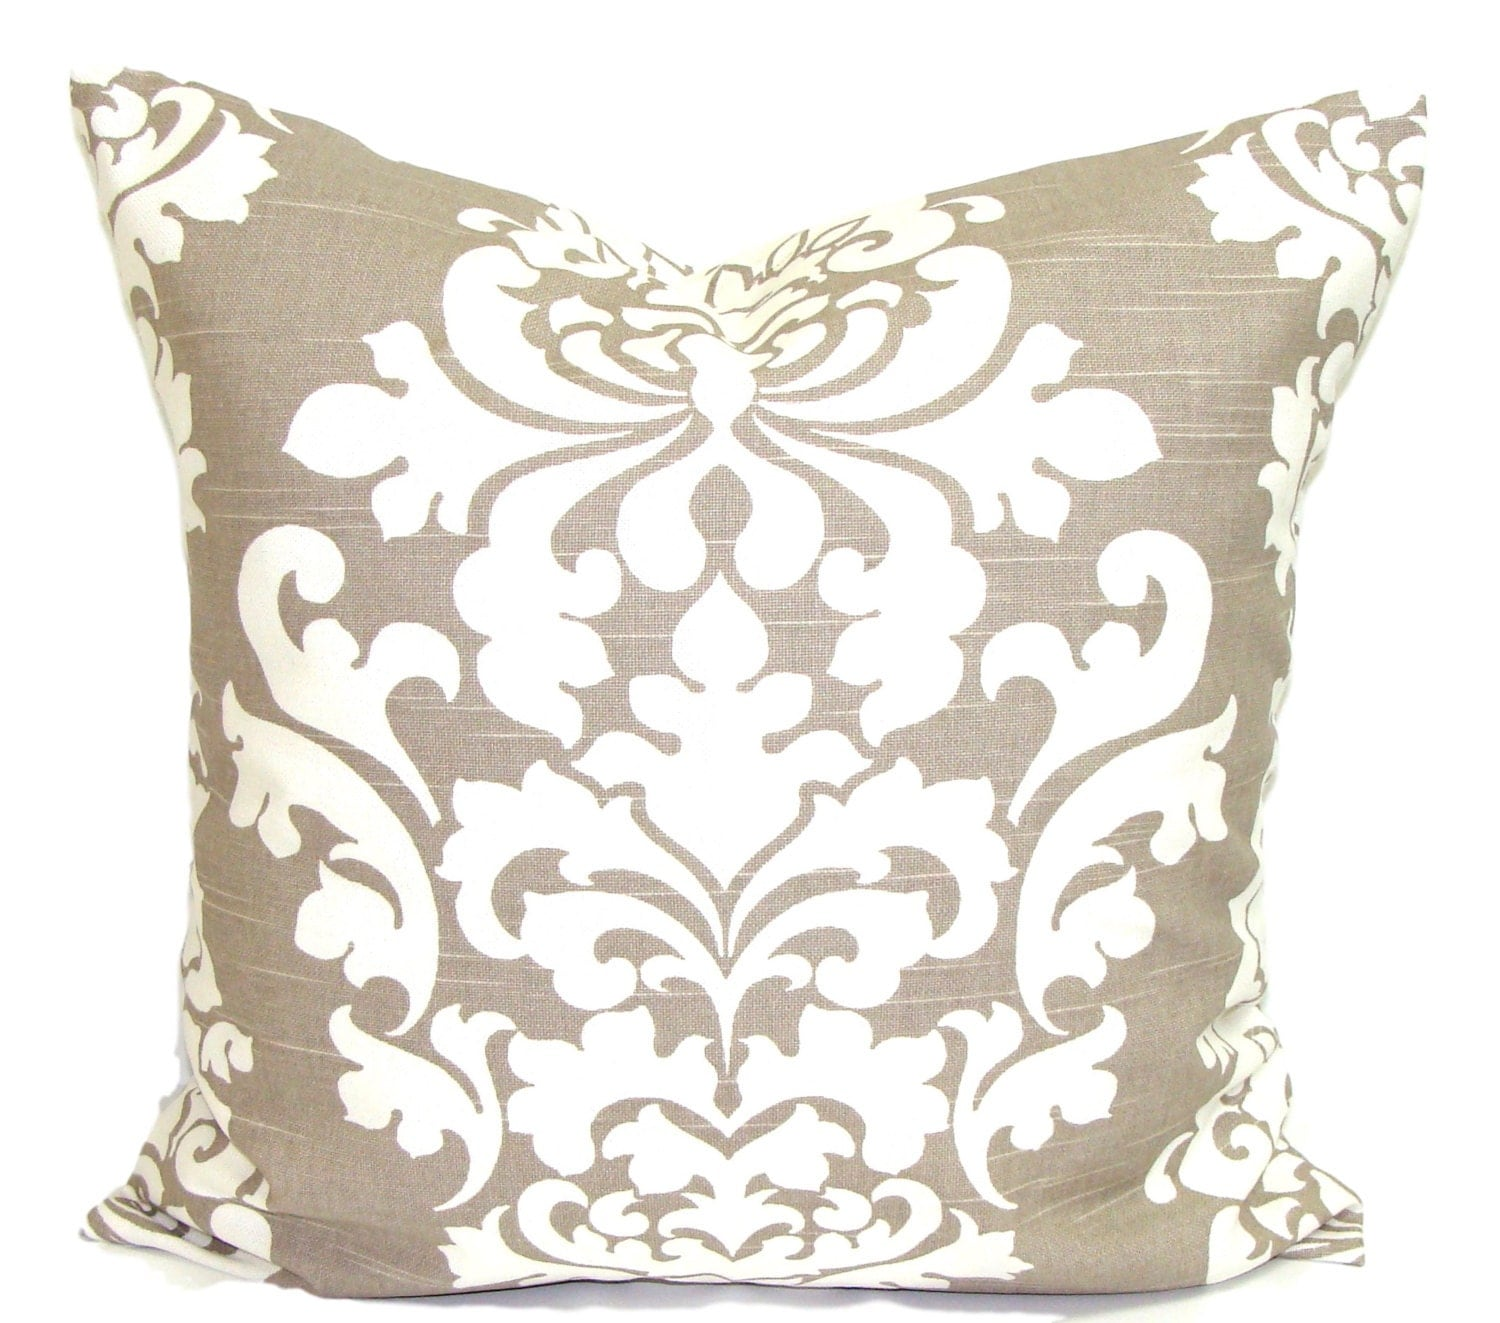 Throw Pillows Native American : Taupe PILLOWS Neutral Pillow Cover Decorative Pillow Throw